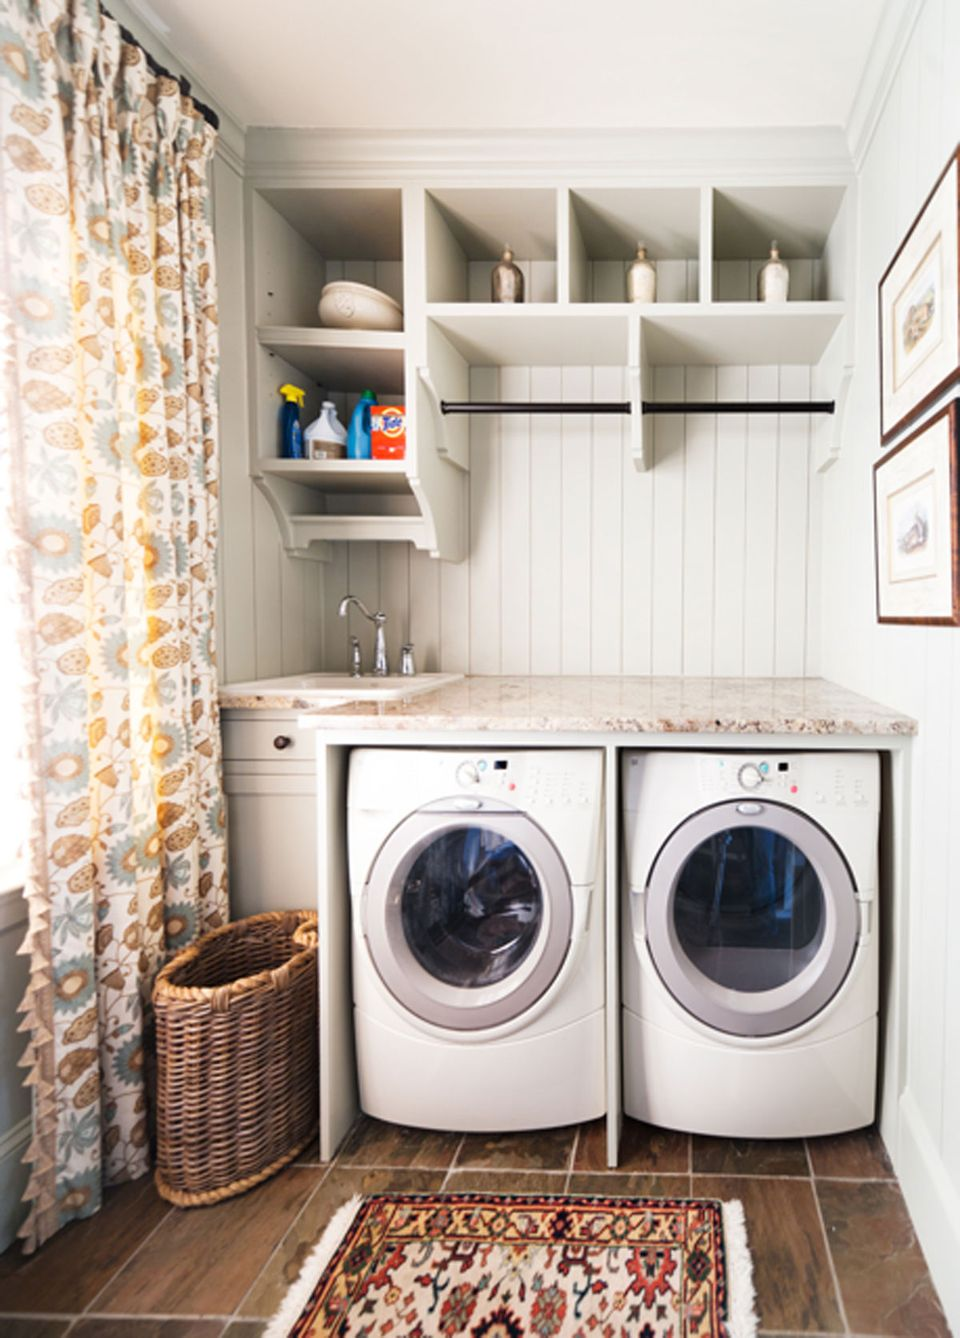 Laundry Room Shelving Ideas for Small Spaces You Need to ... on Laundry Room Organization Ideas  id=82783